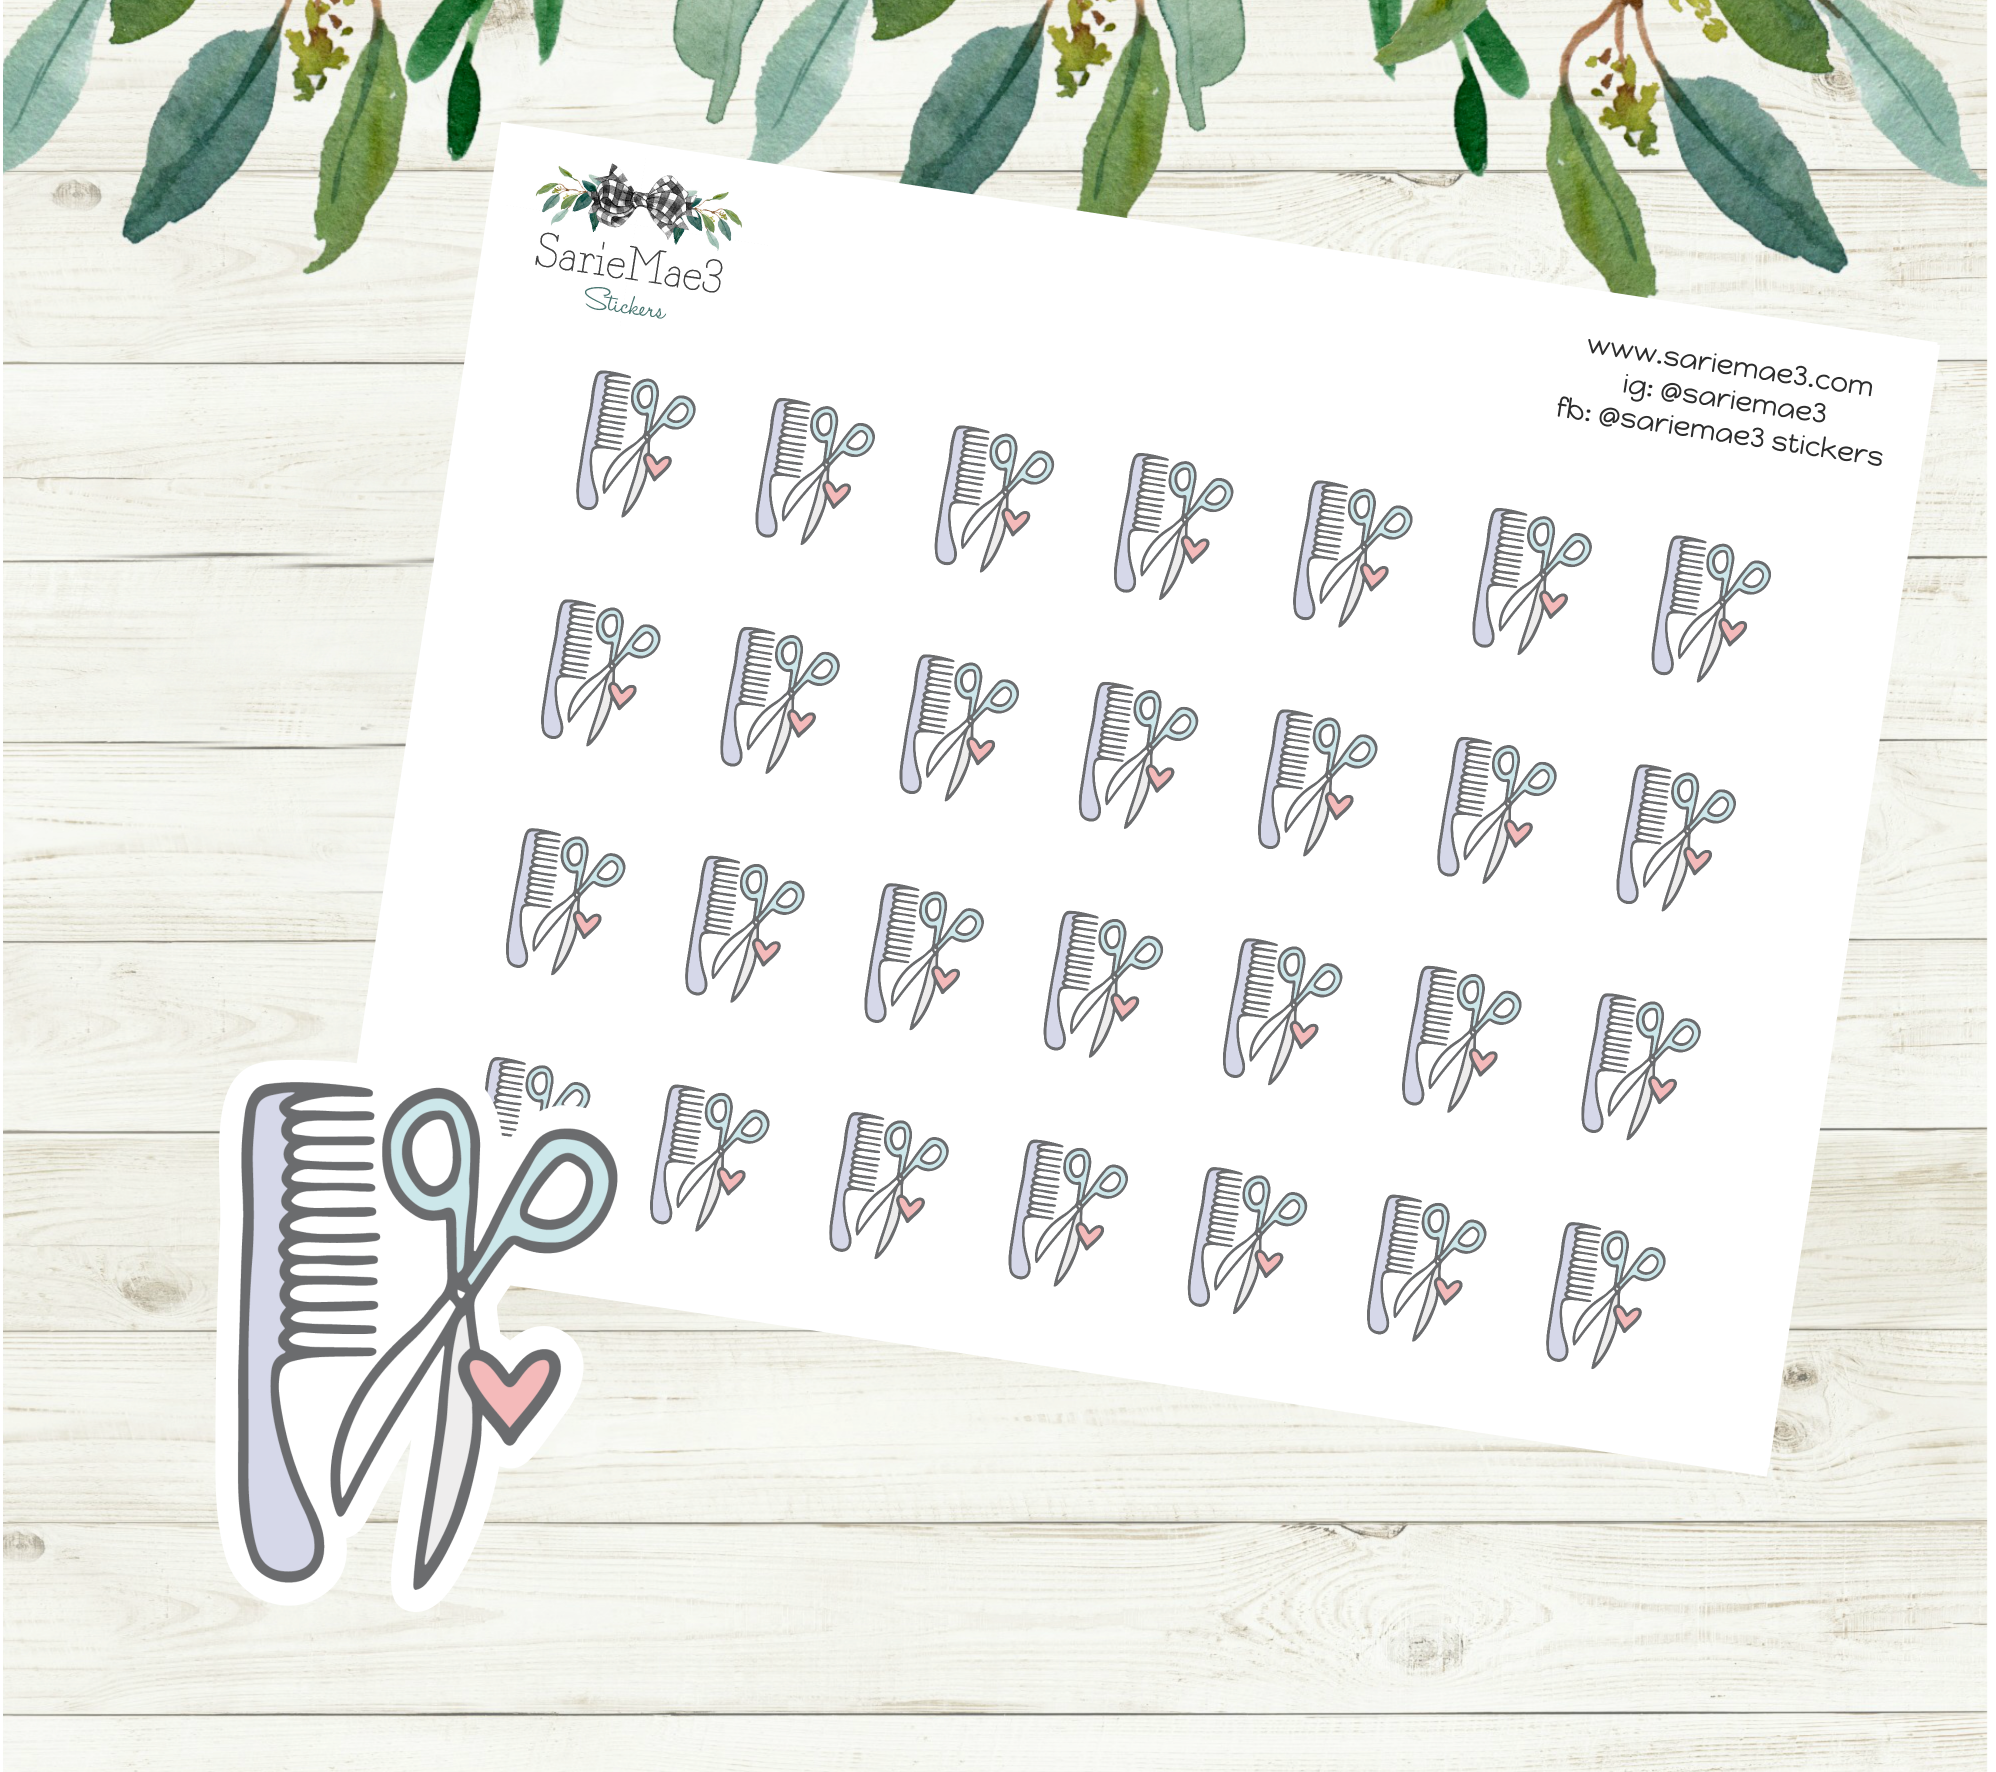 Haircut Planner Stickers